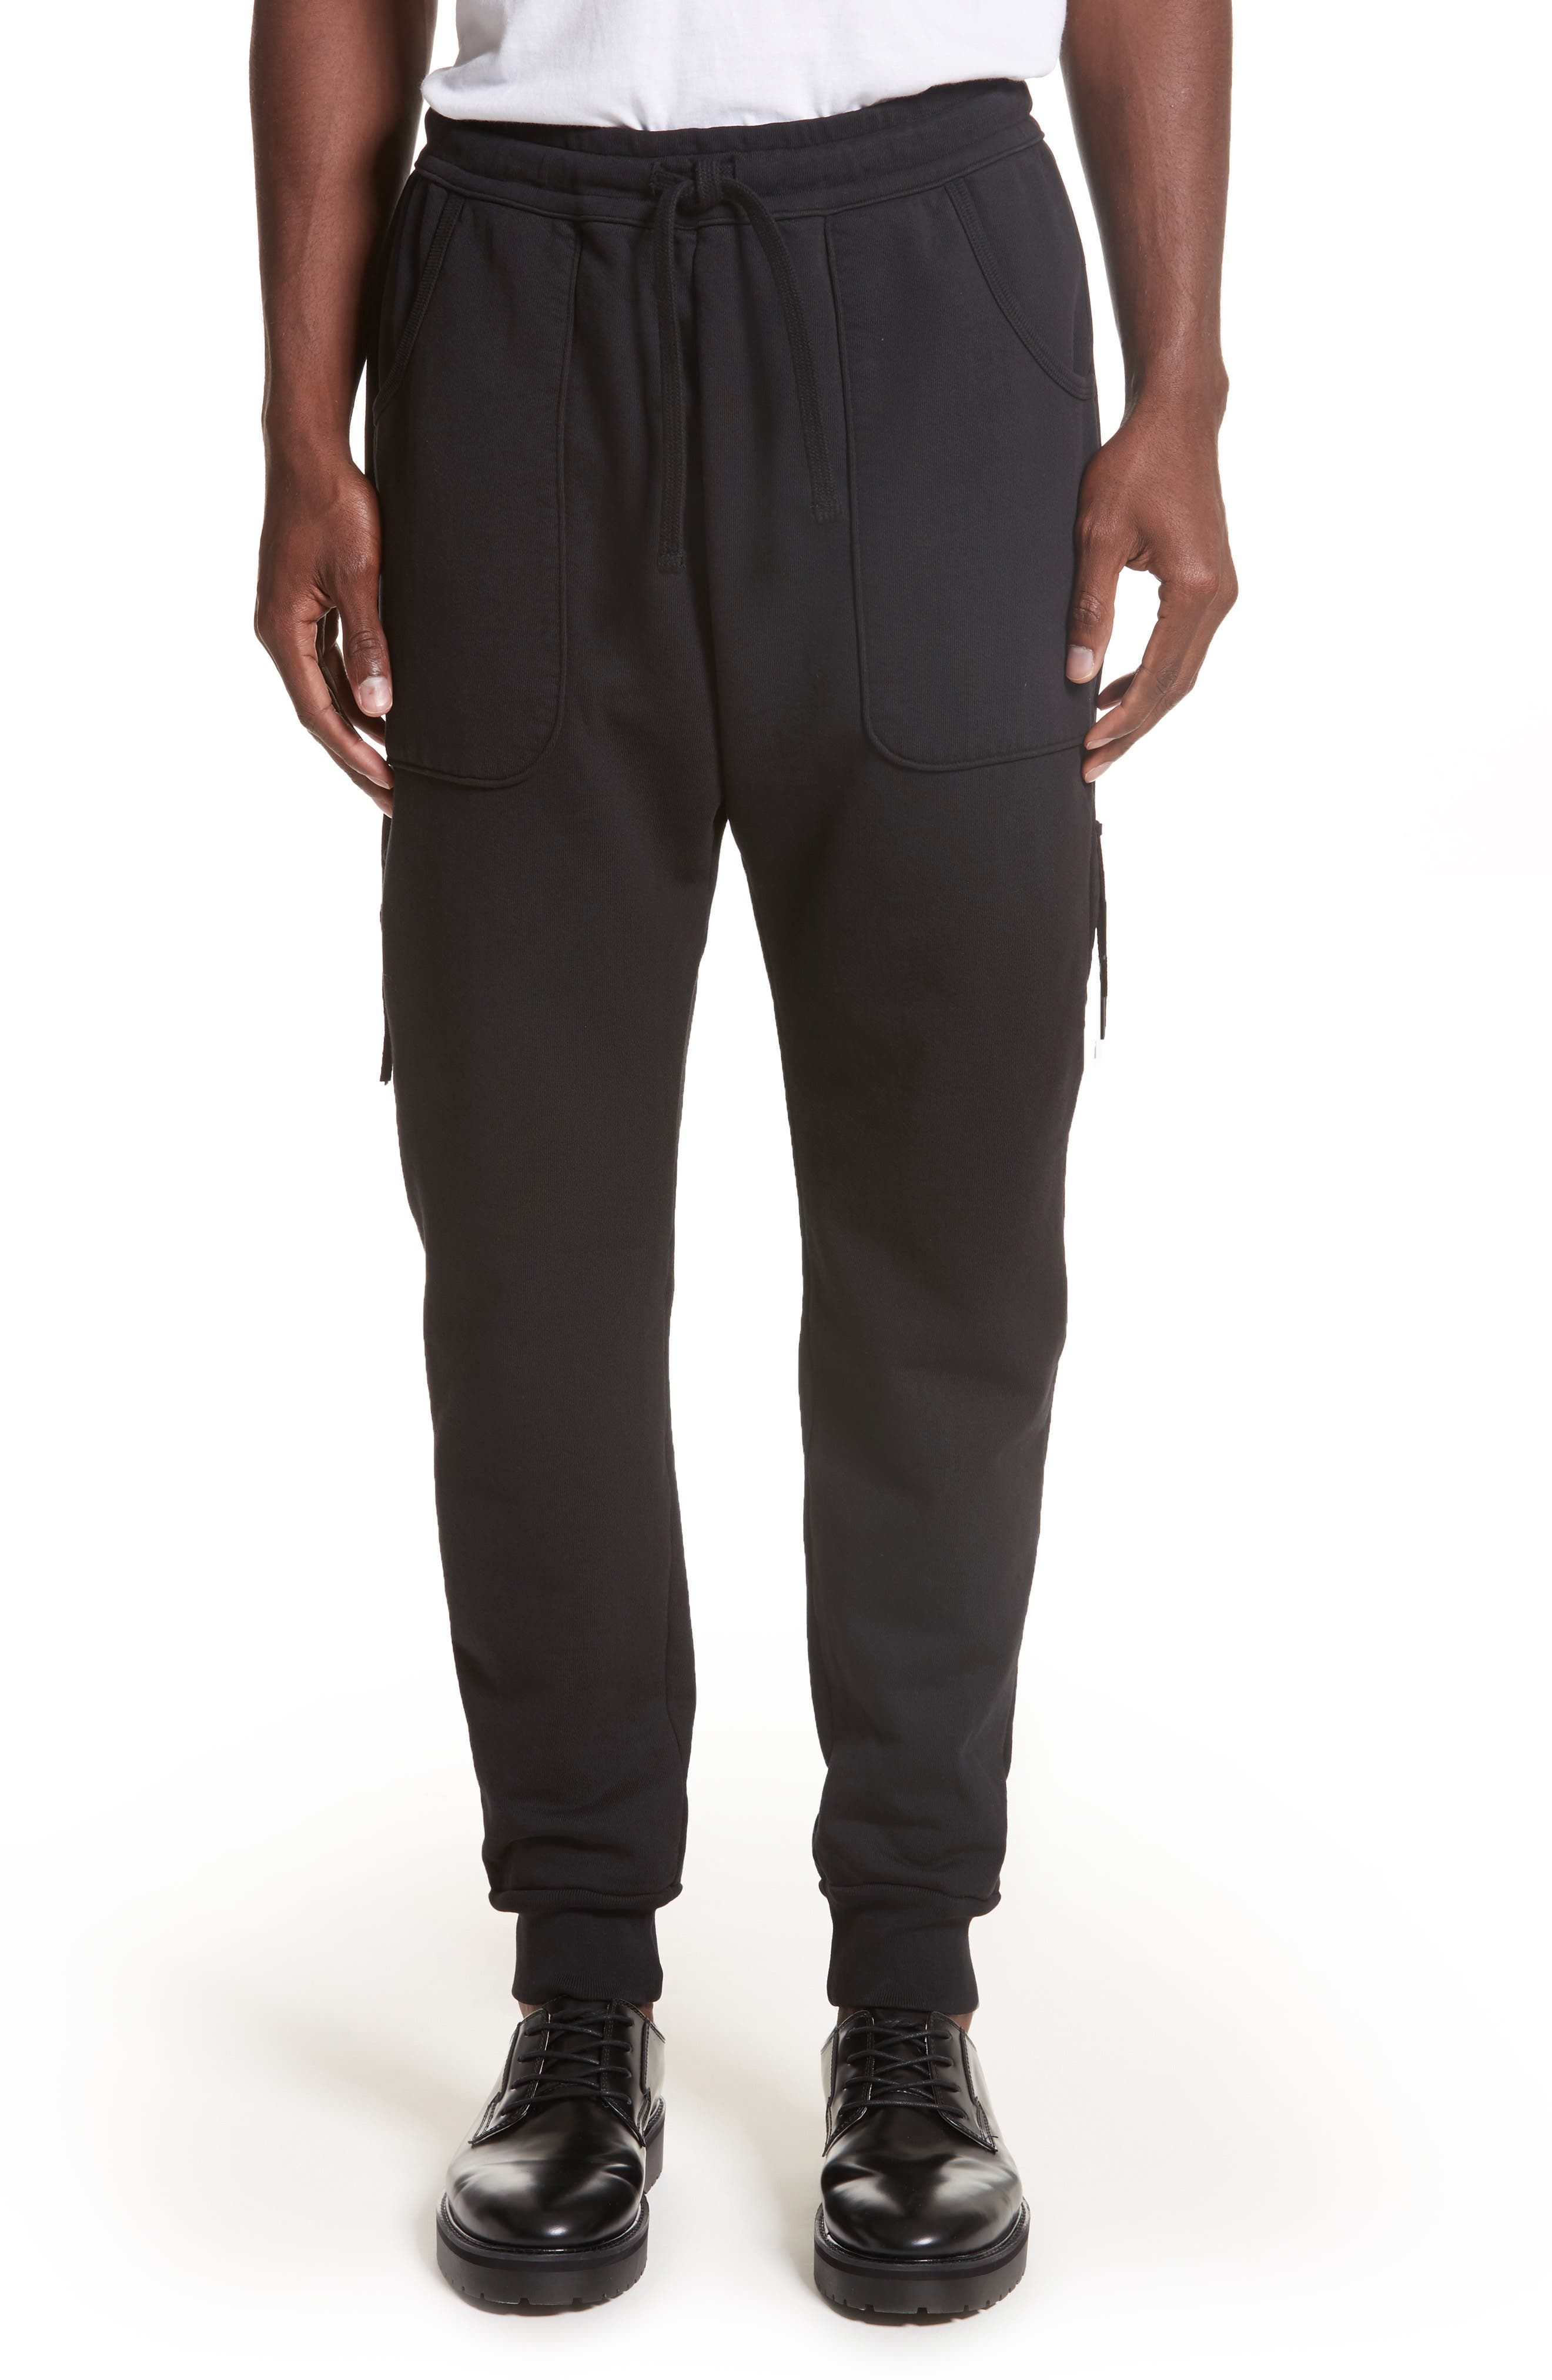 Muldoom Cargo Jogger Pants,                         Main,                         color,